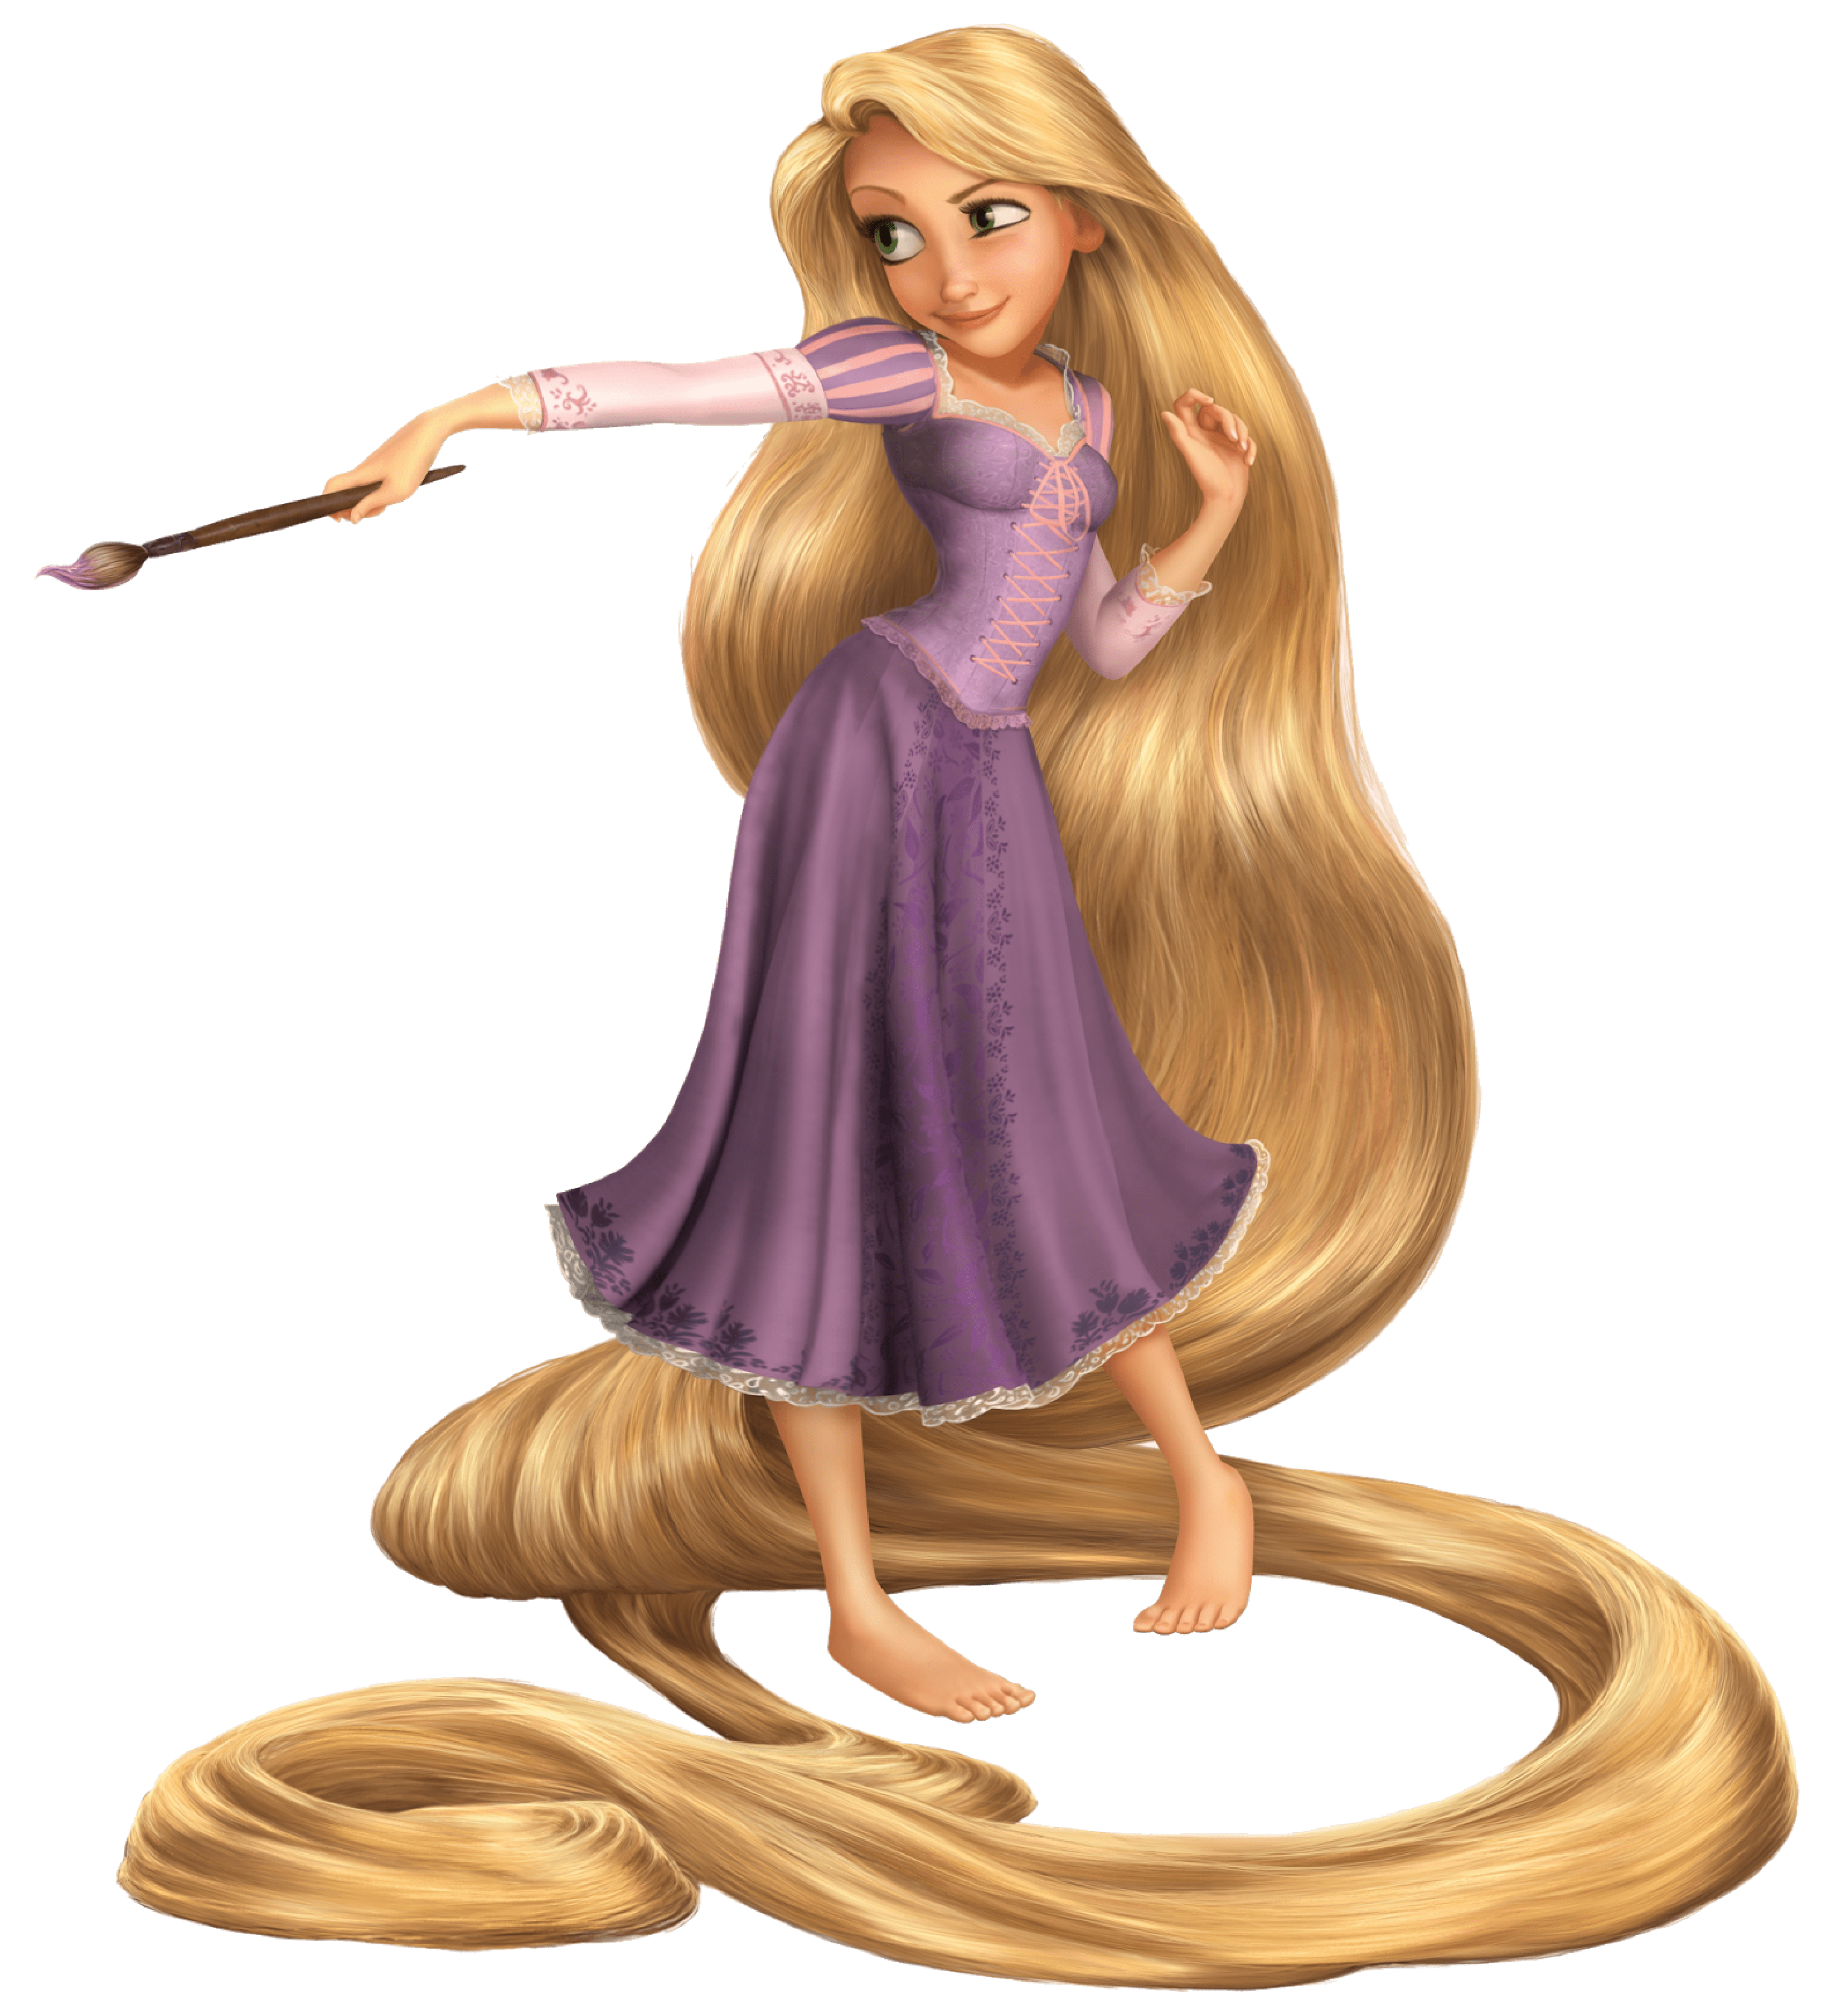 Rapunzel Long Hair Cut Out